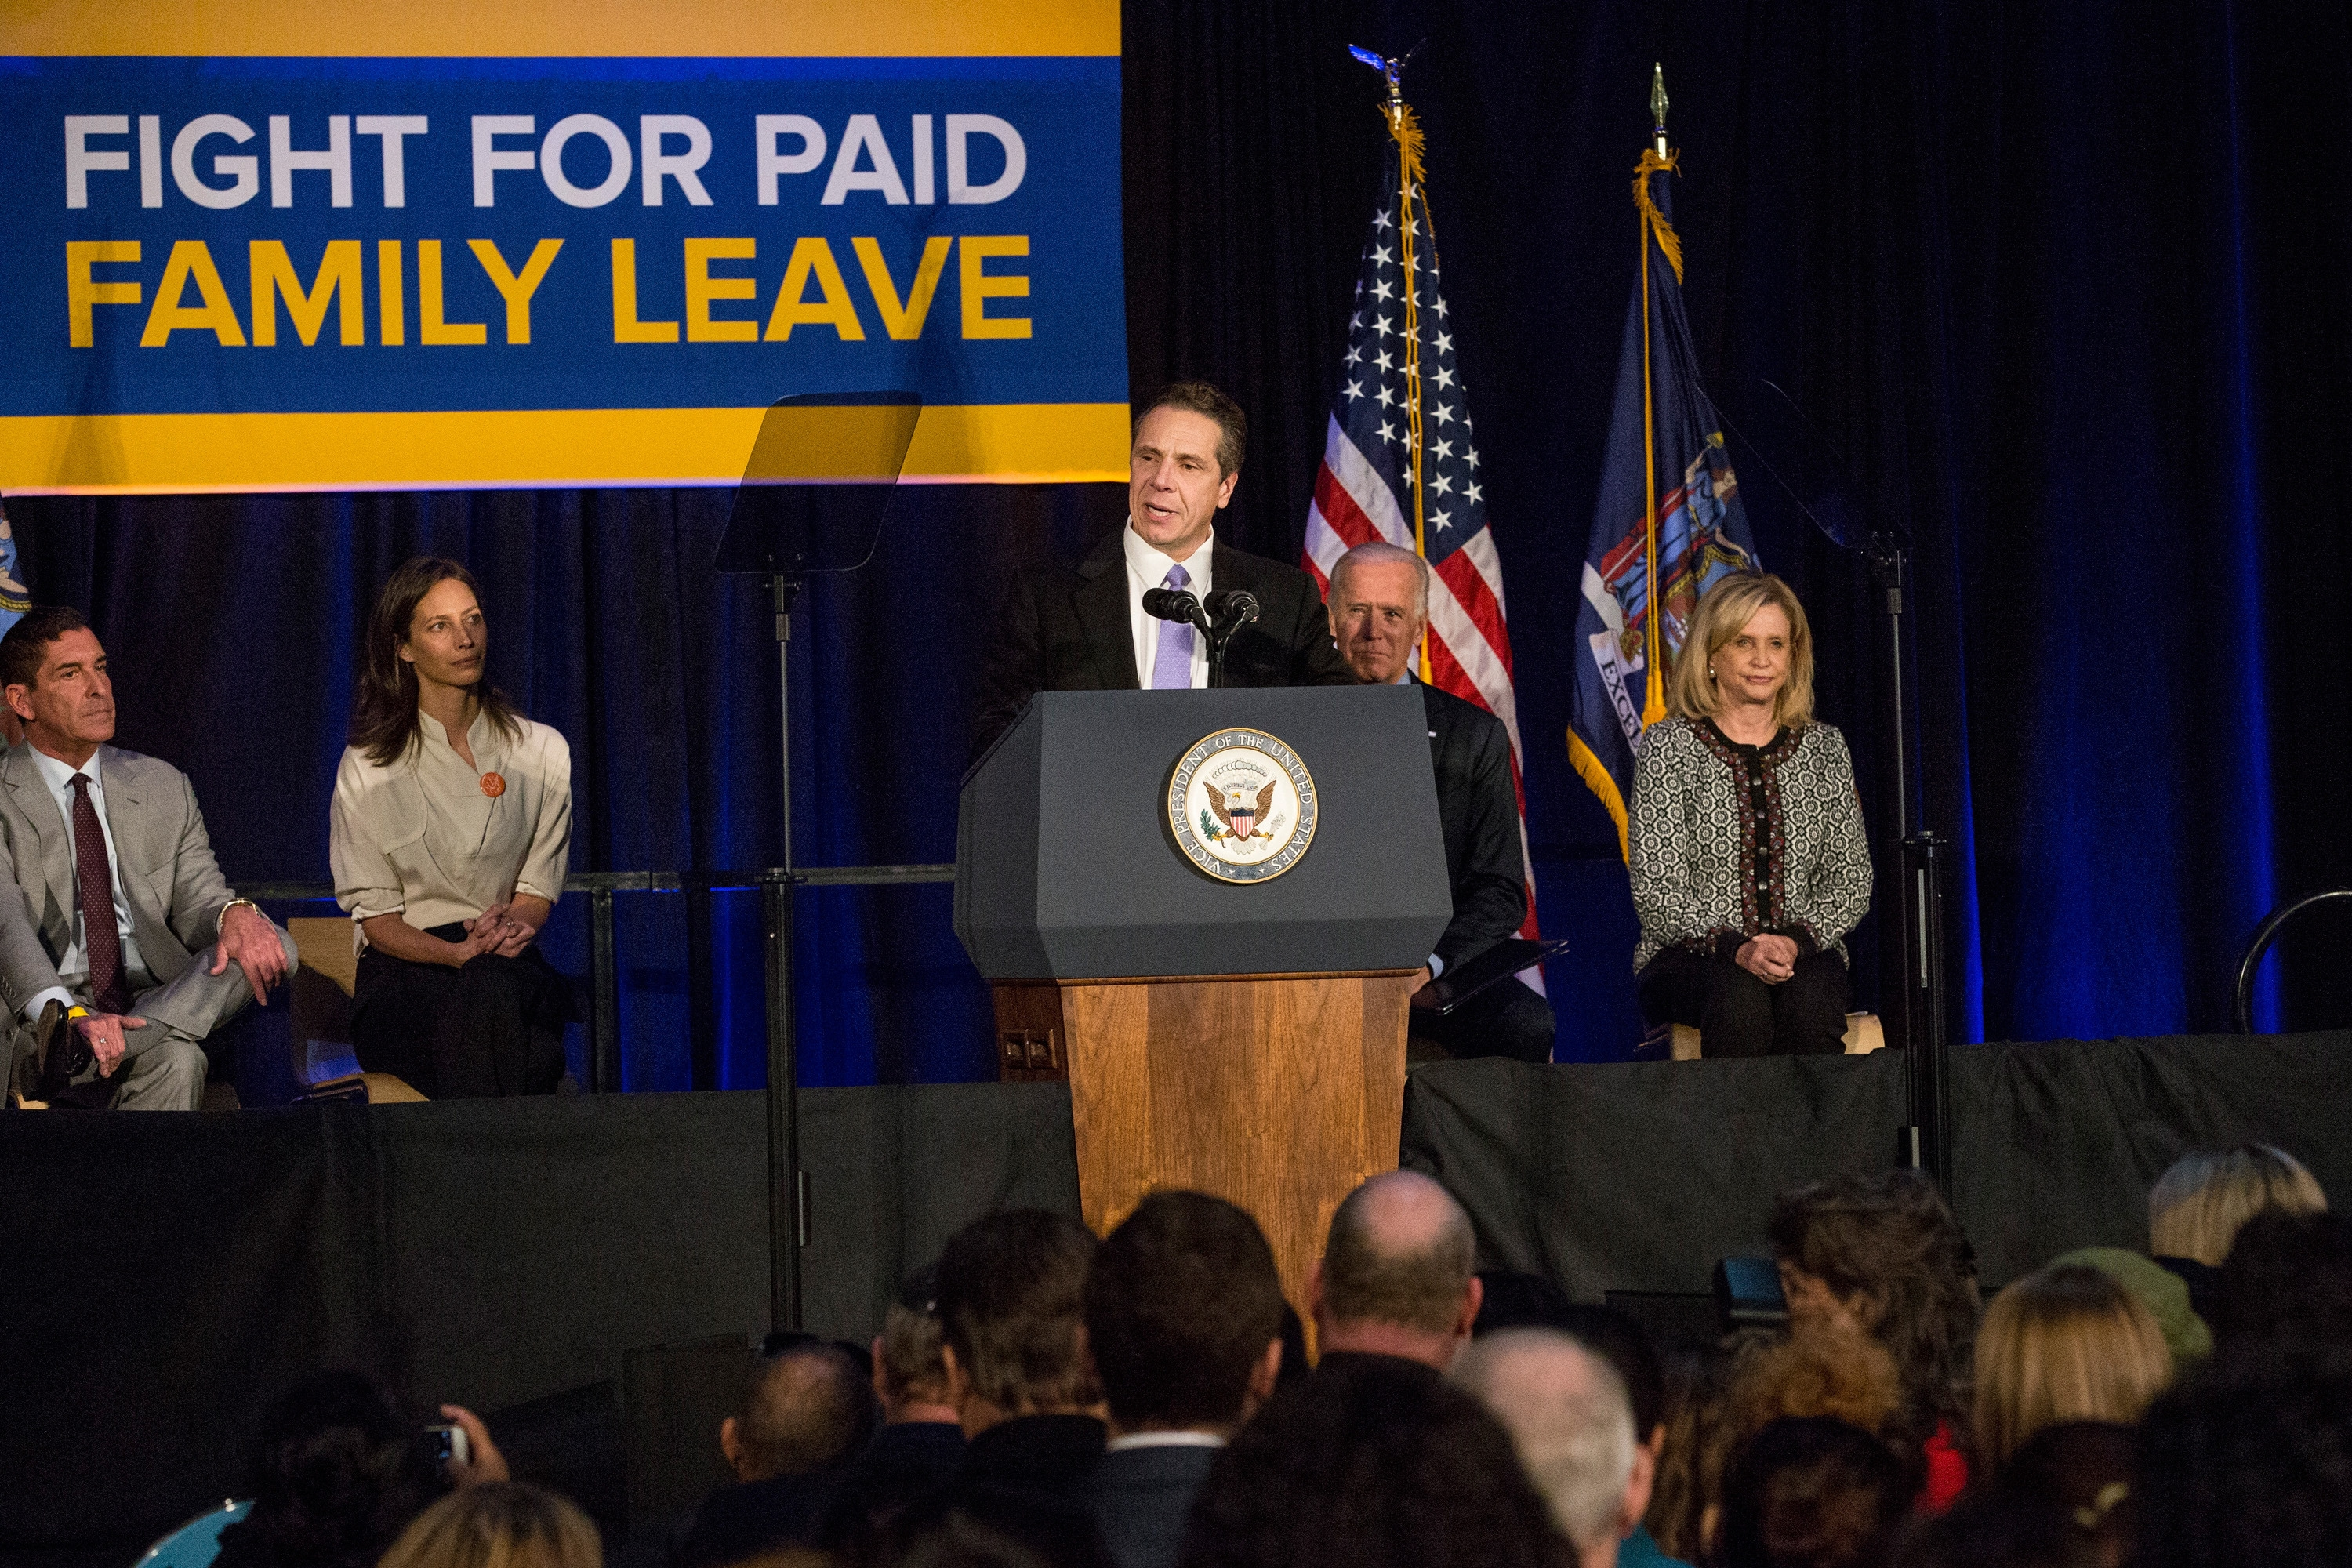 Gov. Andrew Cuomo pushed for paid family at a rally in New York City Jan. 29, 201. (Getty Images)